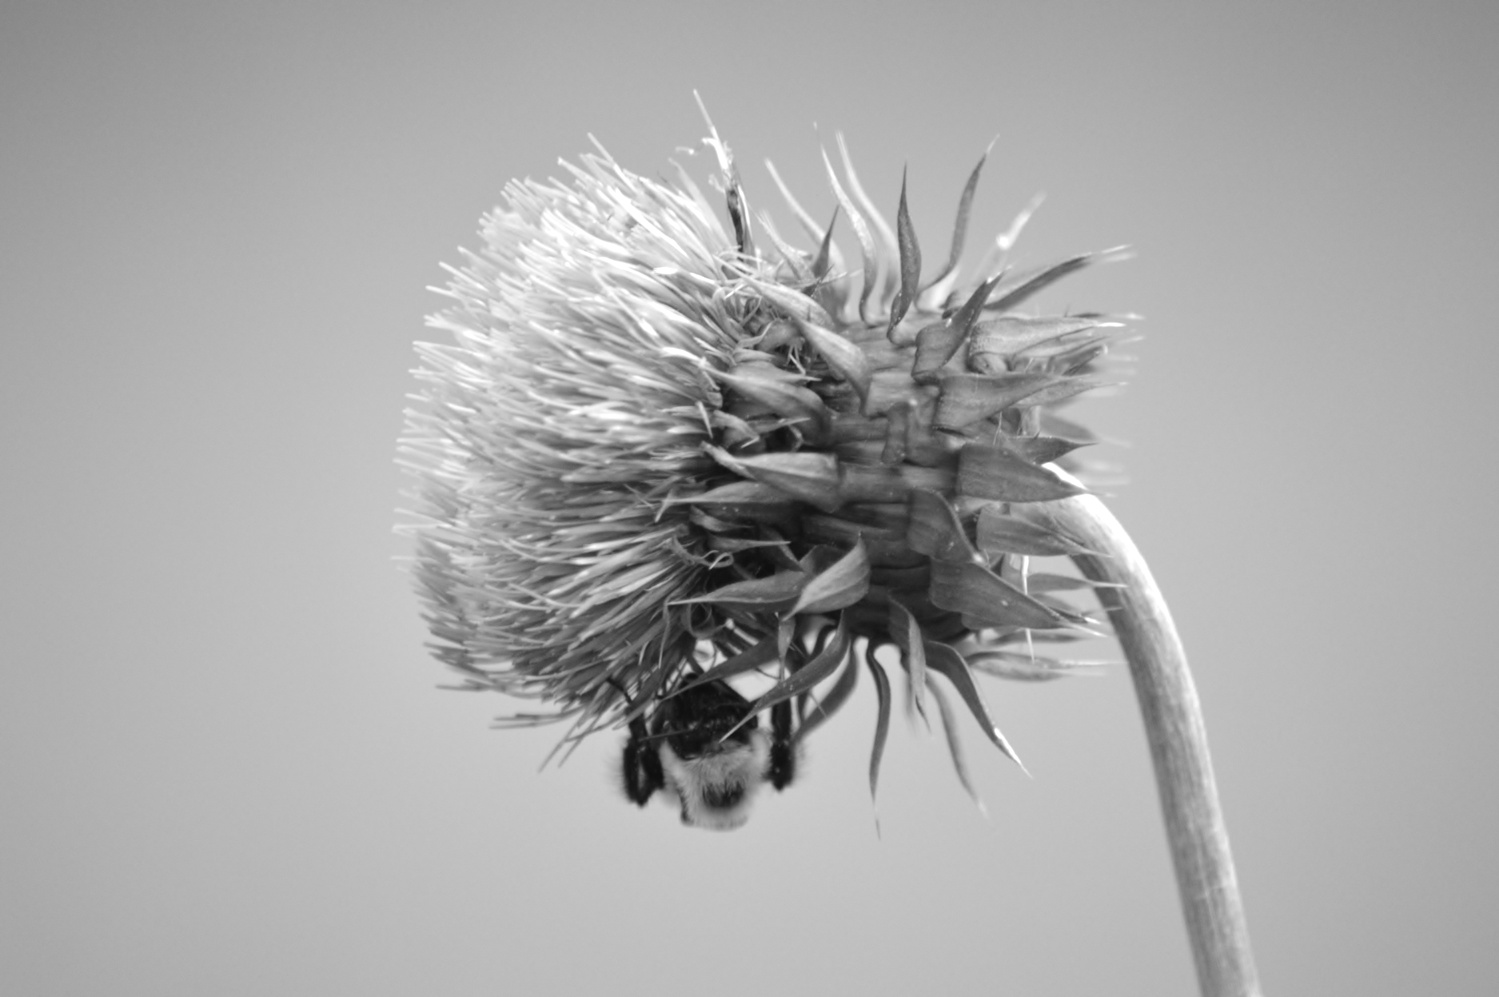 Bumblebee Thistle by Thomas Herbst